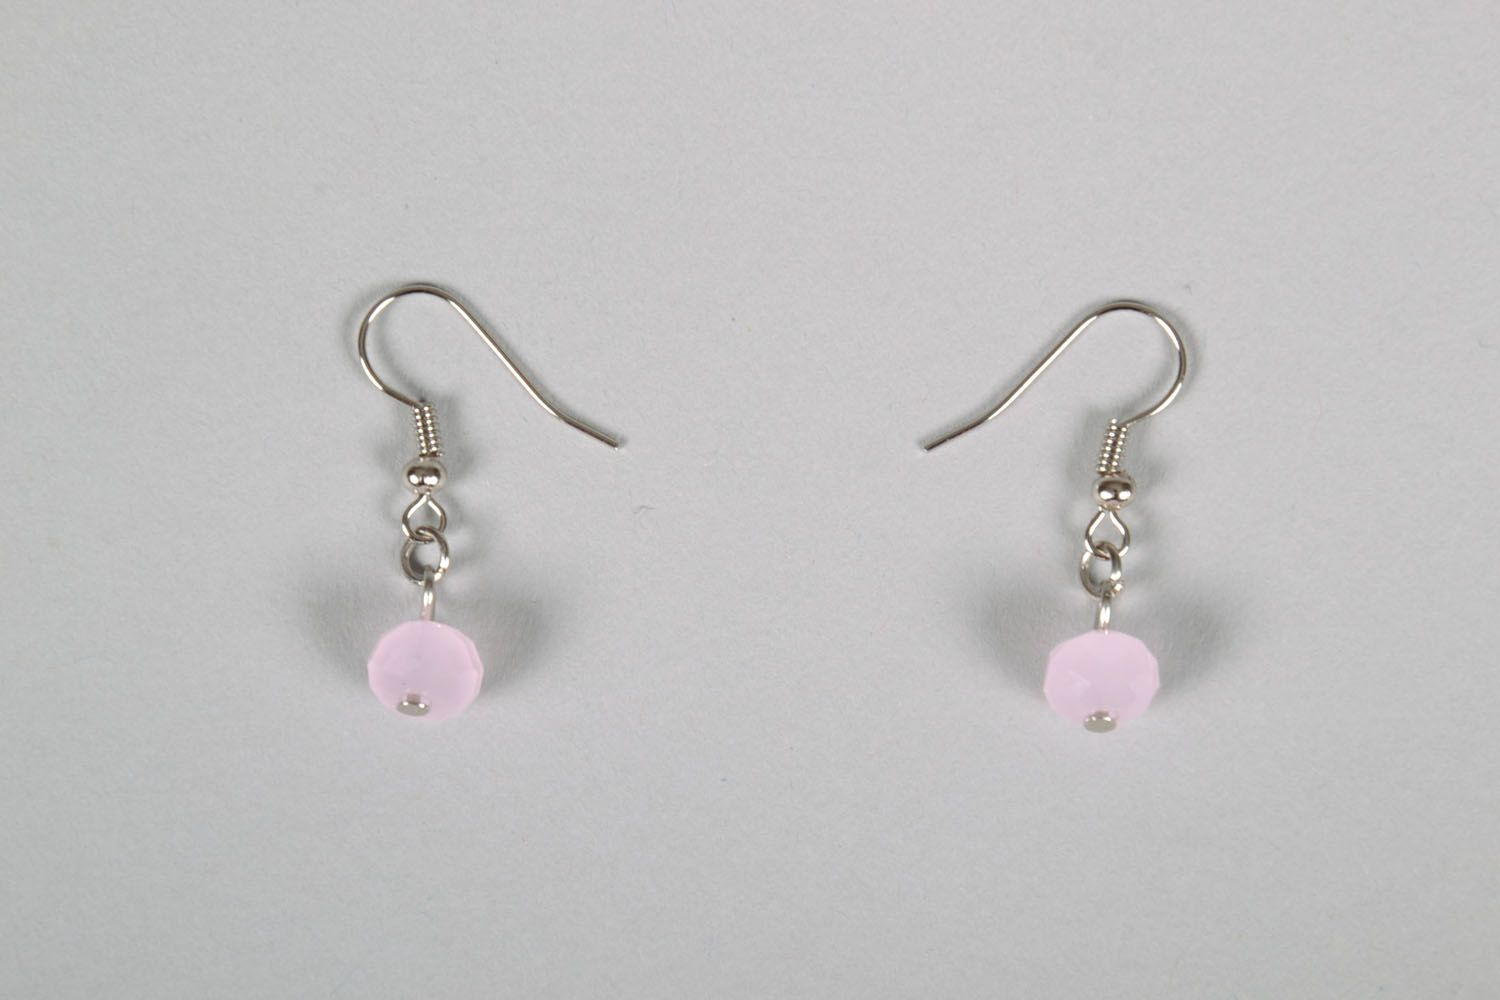 Beaded earrings with charms photo 2